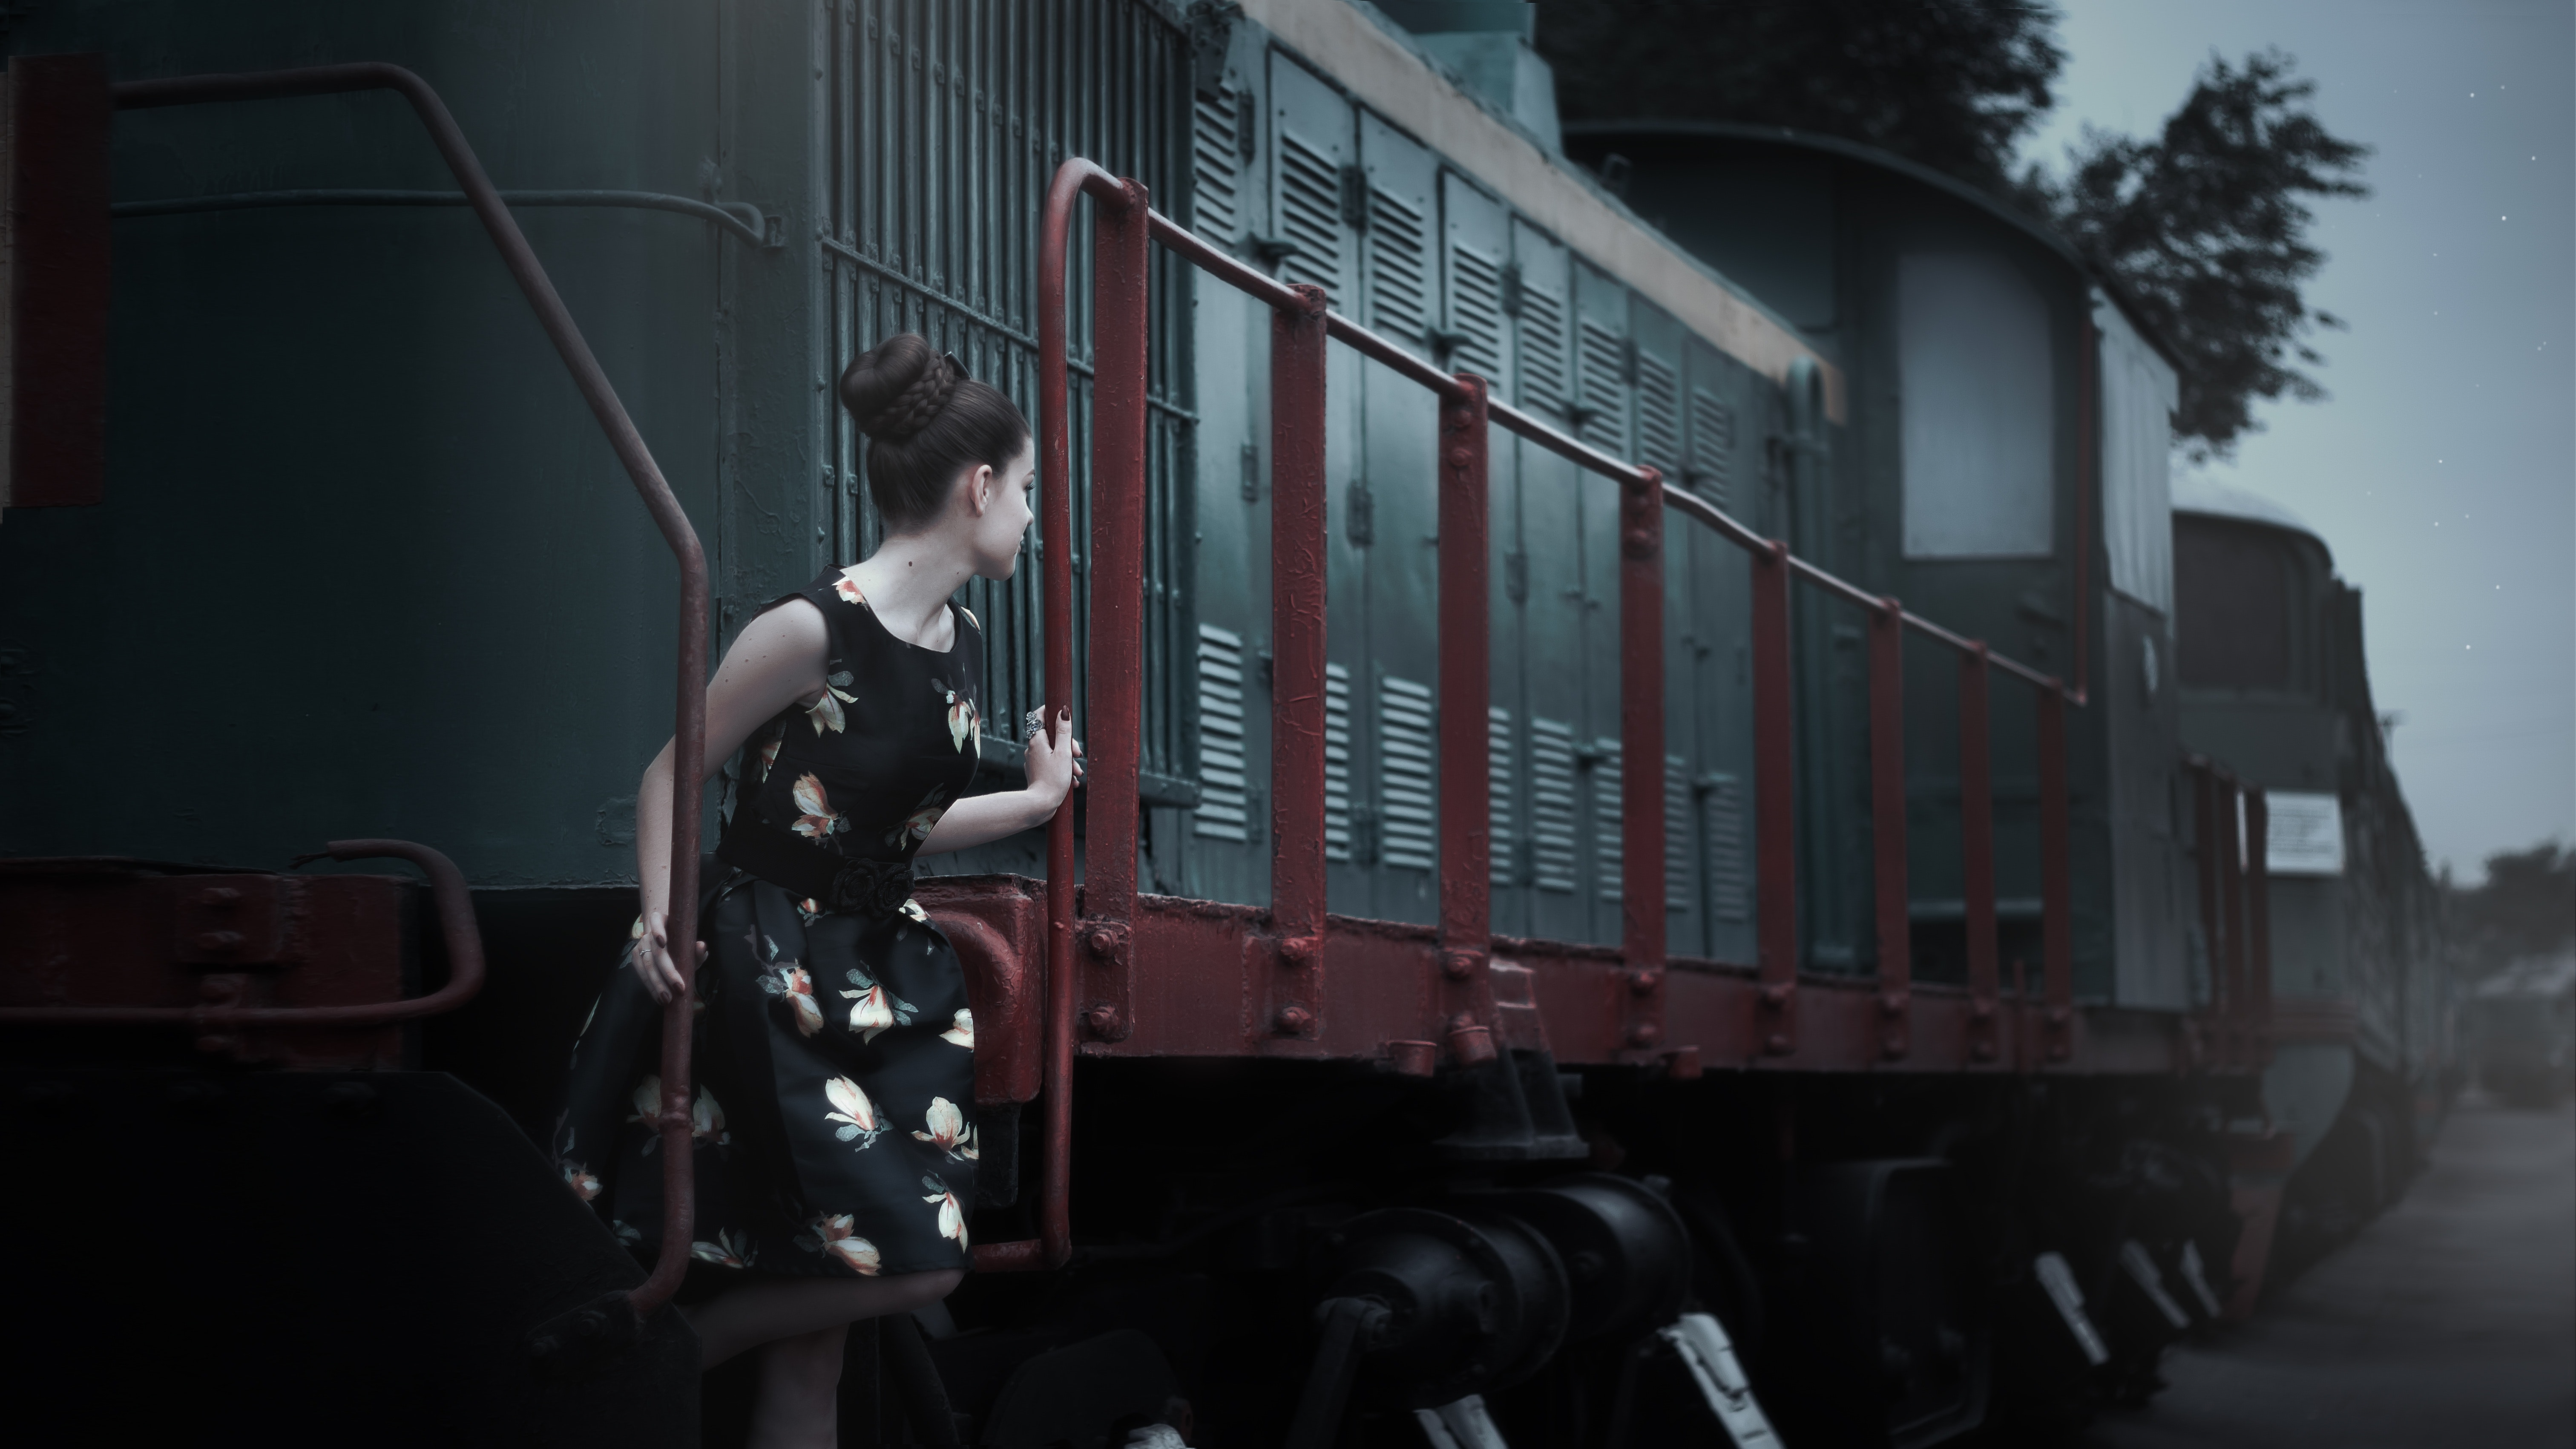 Woman in train photo